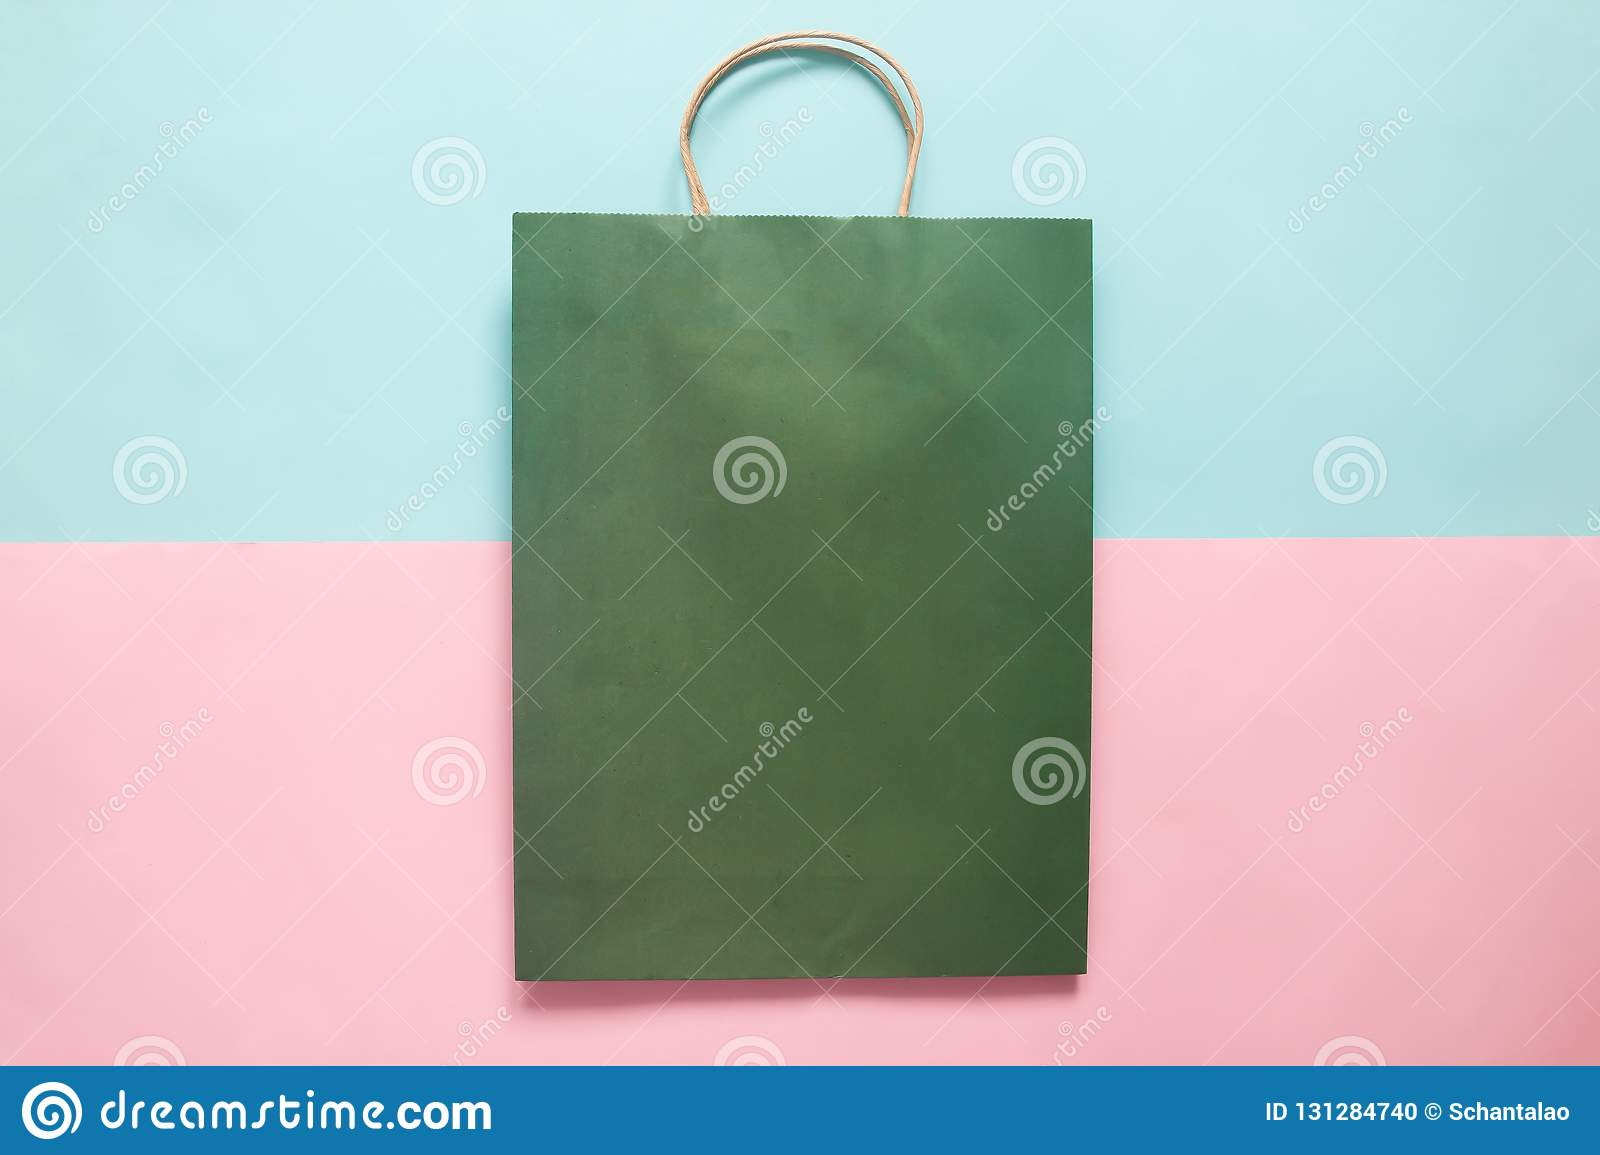 green colour shopping bag mockup for branding and corporate iden